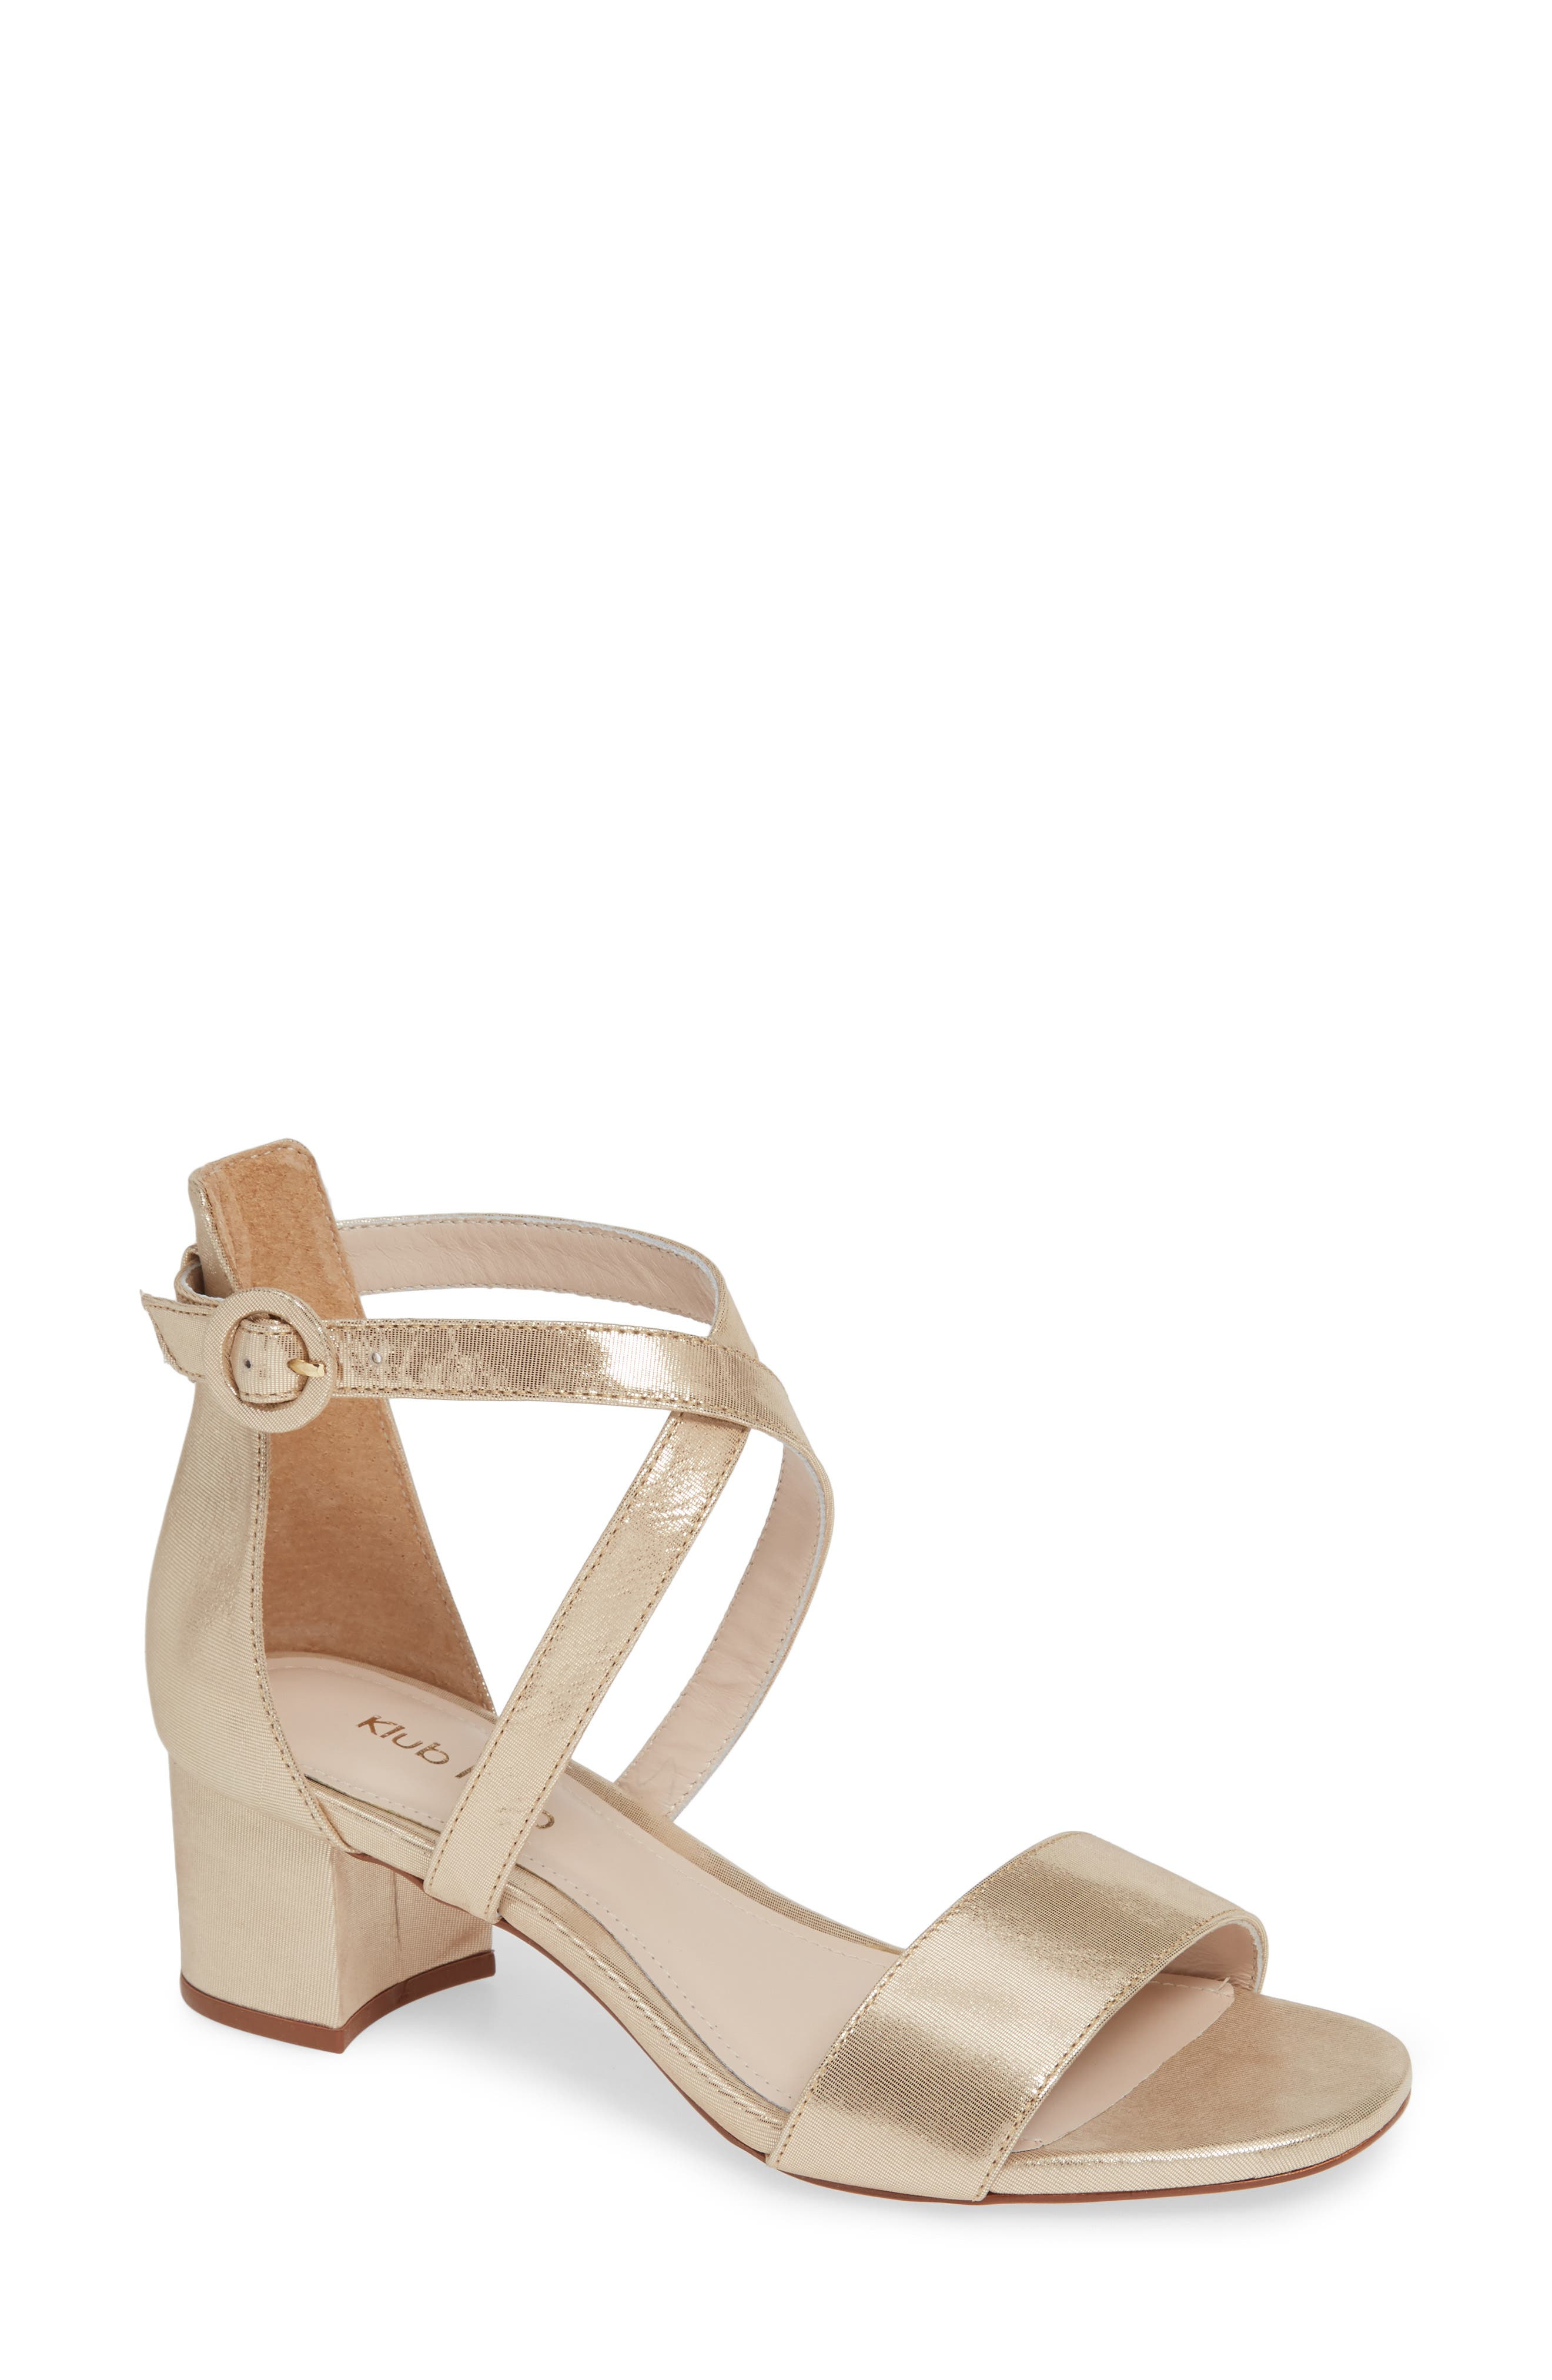 Raeyna Sandal,                             Main thumbnail 1, color,                             CHAMPAGNE LEATHER